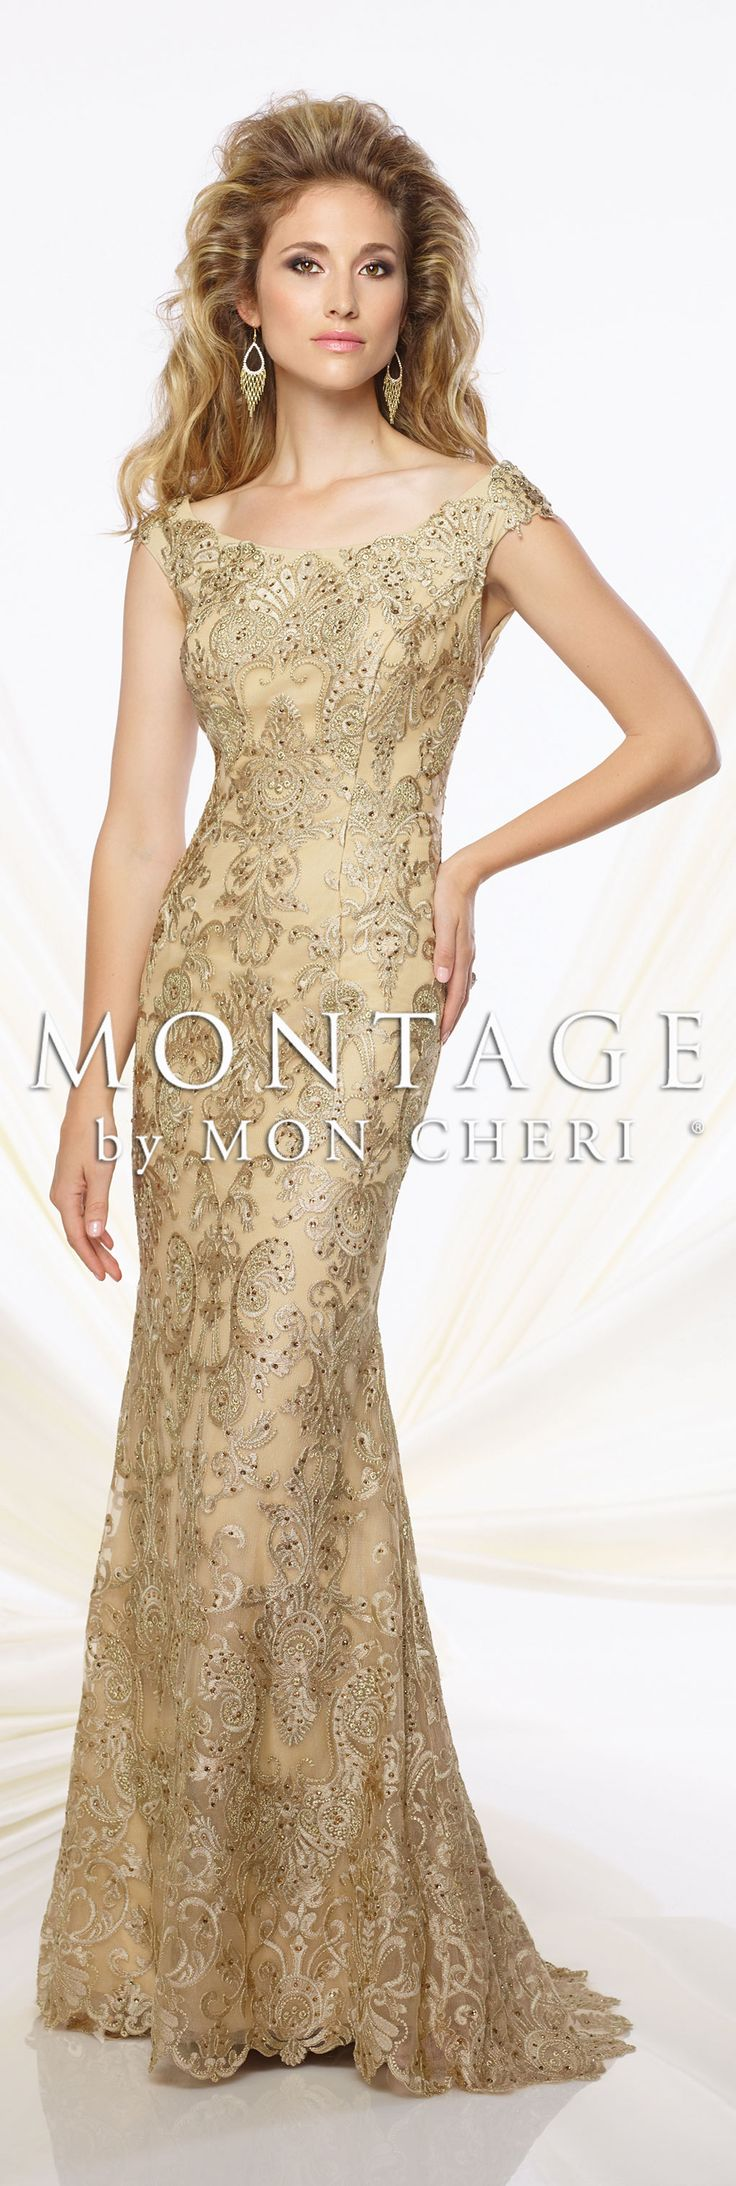 Montage by Mon Cheri Spring 2016 - Style No. 116948 #eveninggowns